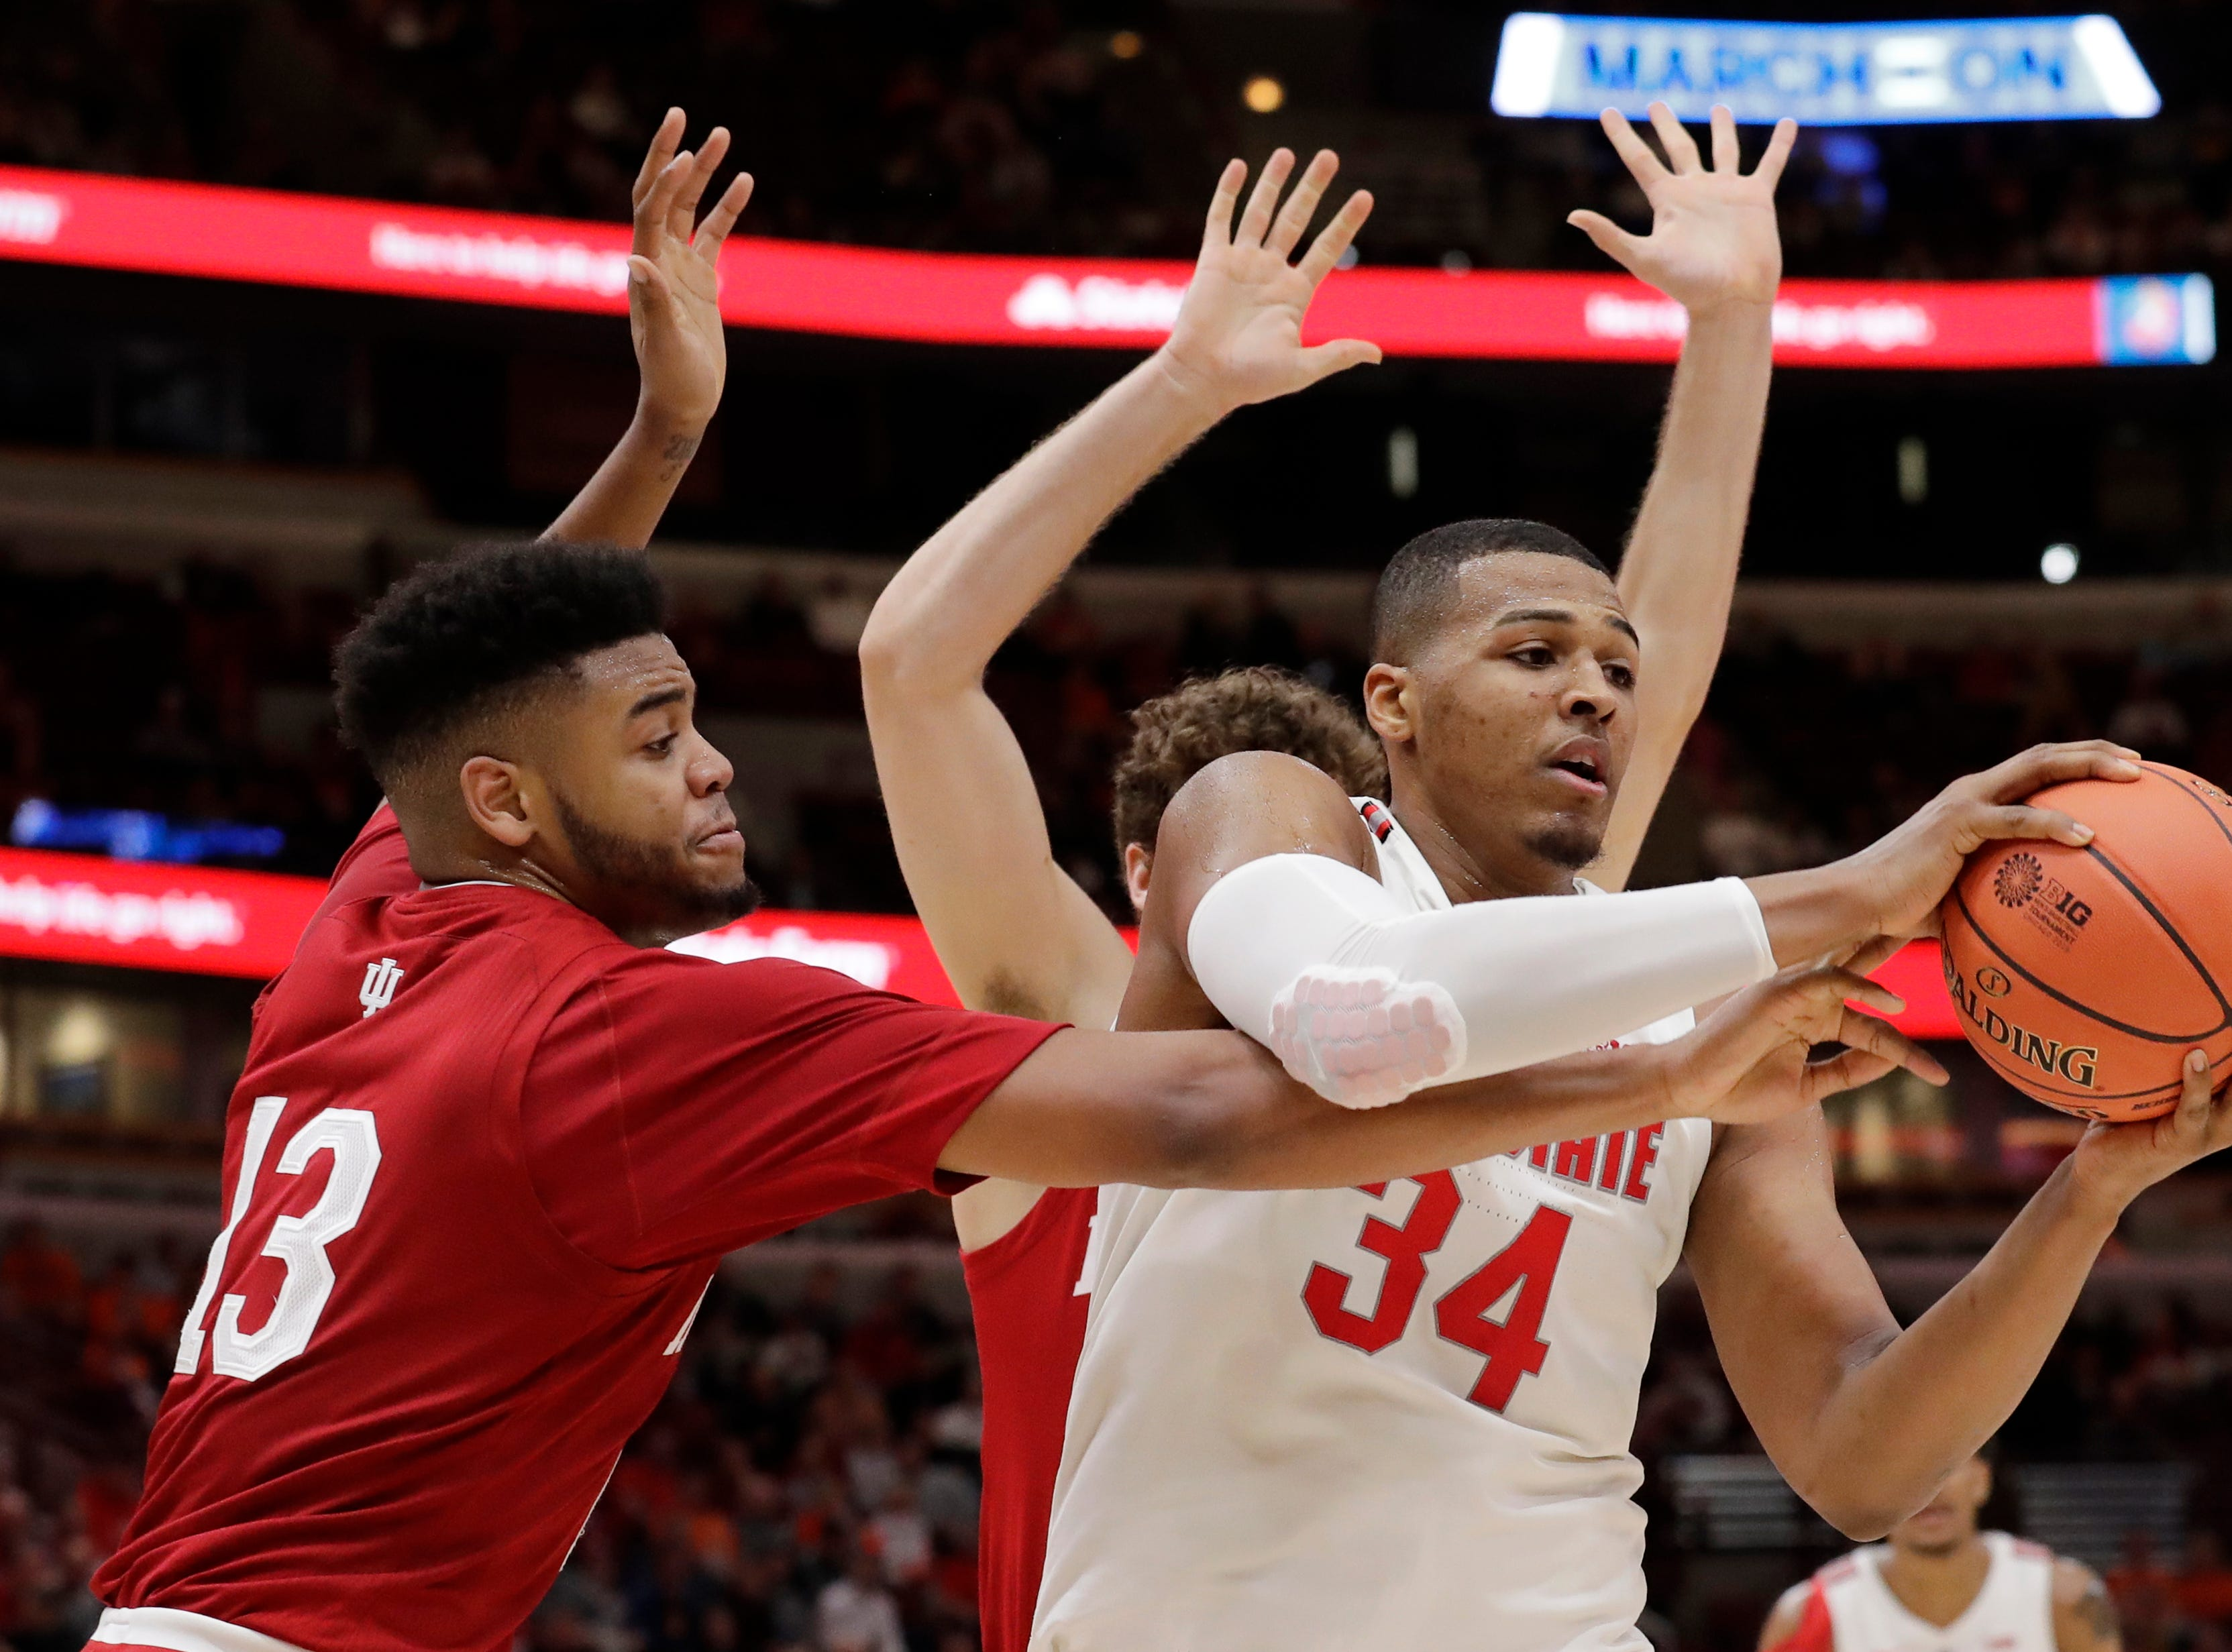 Ohio State's Kaleb Wesson (34) looks to pass against Indiana's Juwan Morgan (13) during the second half of an NCAA college basketball game in the second round of the Big Ten Conference tournament, Thursday, March 14, 2019, in Chicago. (AP Photo/Nam Y. Huh)